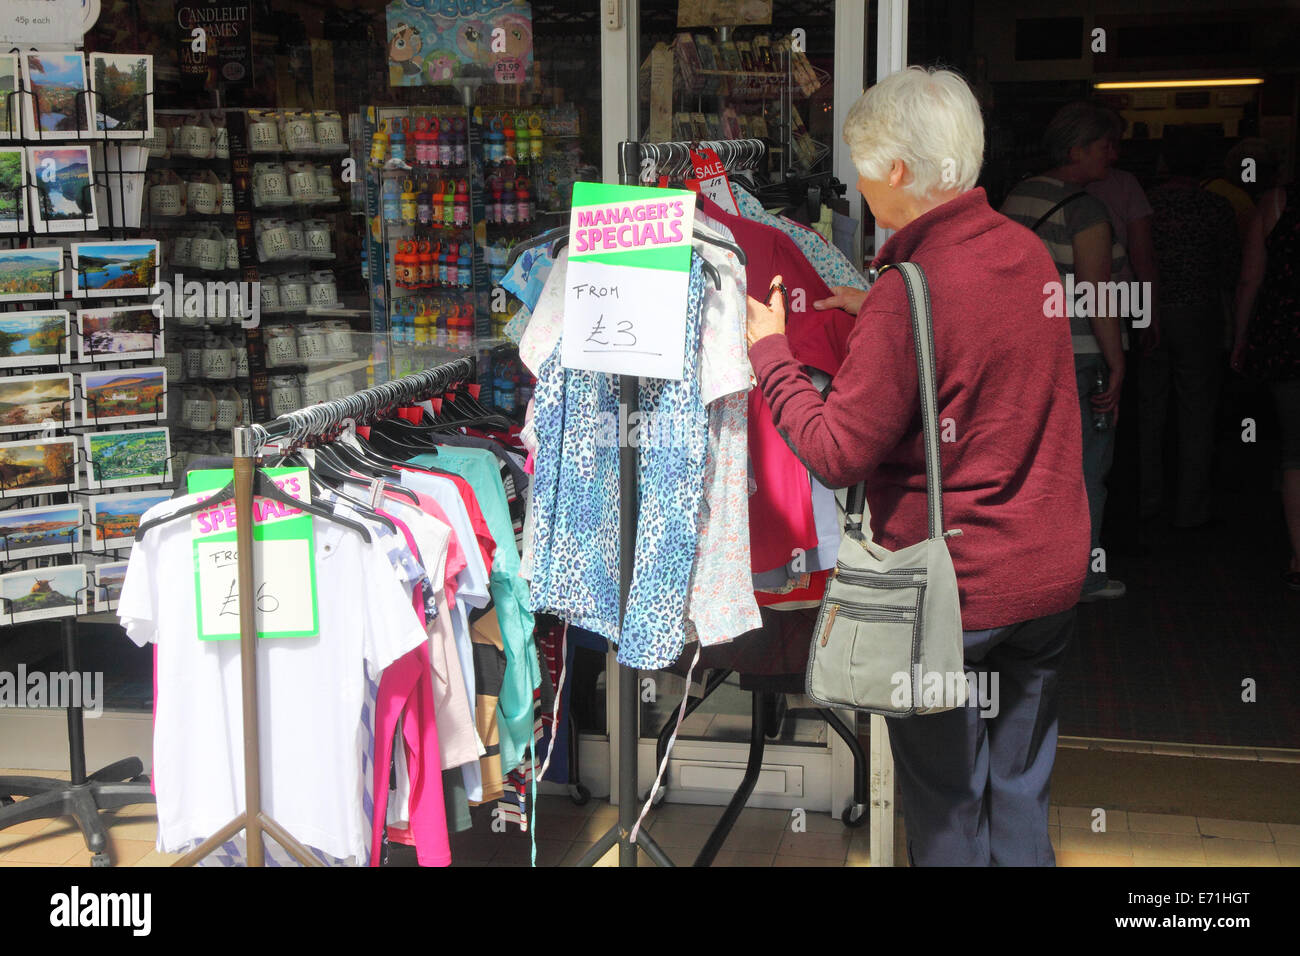 Affluent older lady browsing bargain rail outside a shop in Pitlochry, Scotland - Stock Image